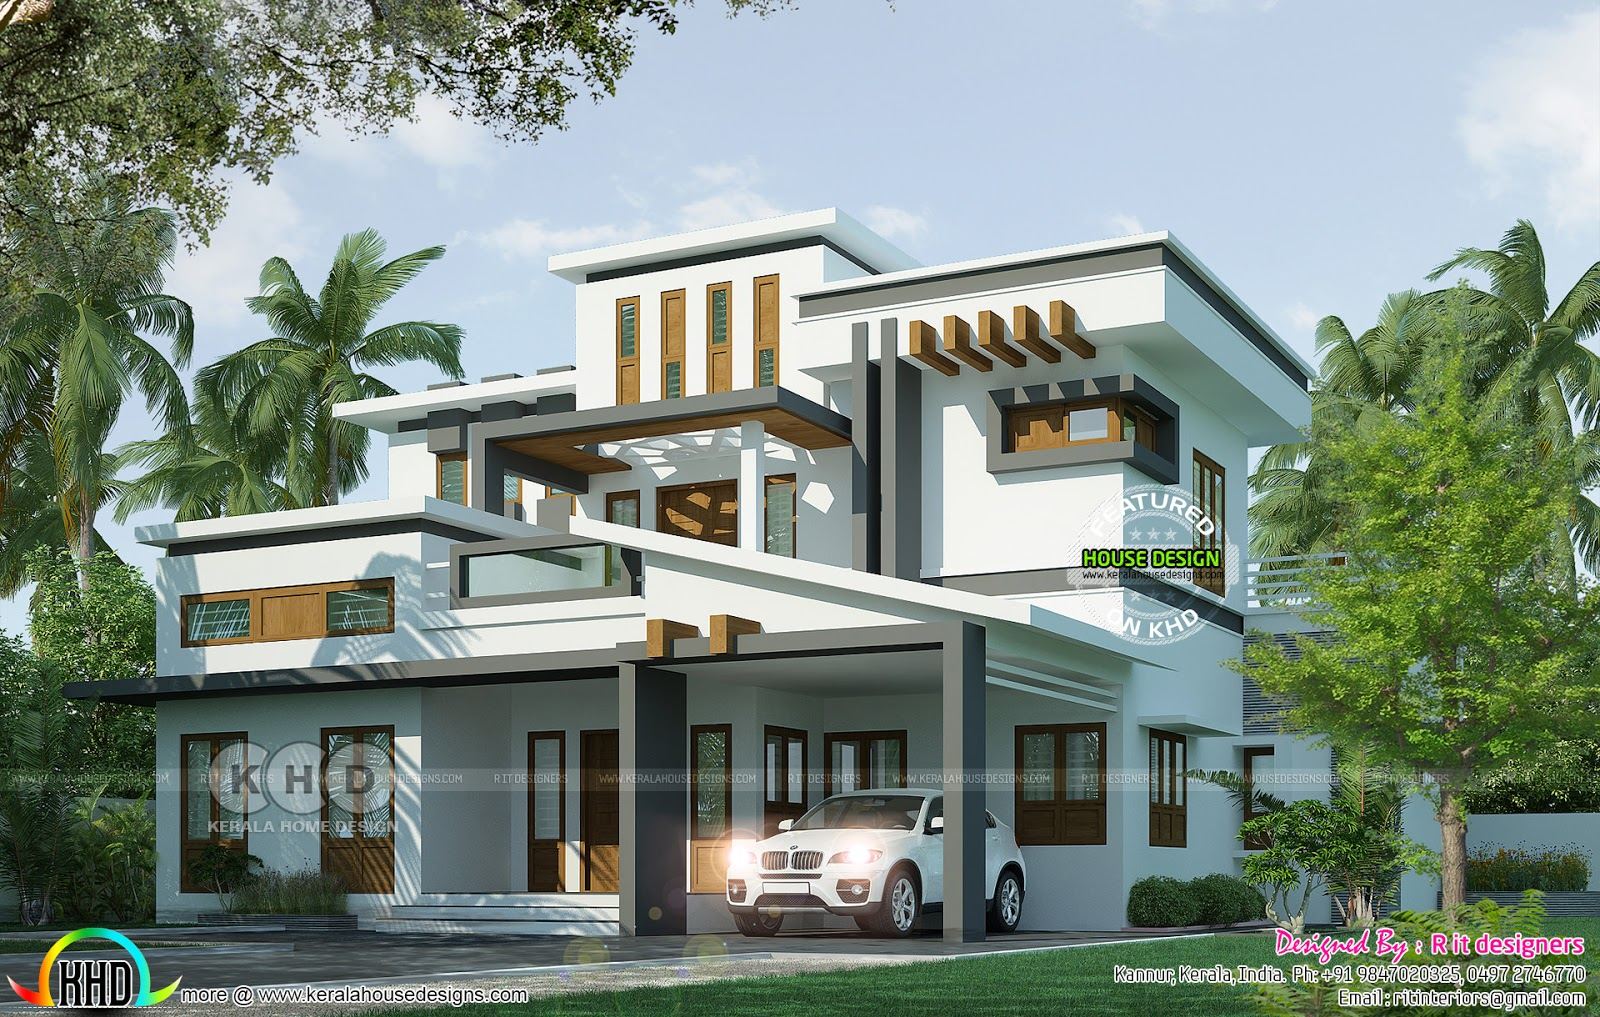 Kerala New Model House Images 2018